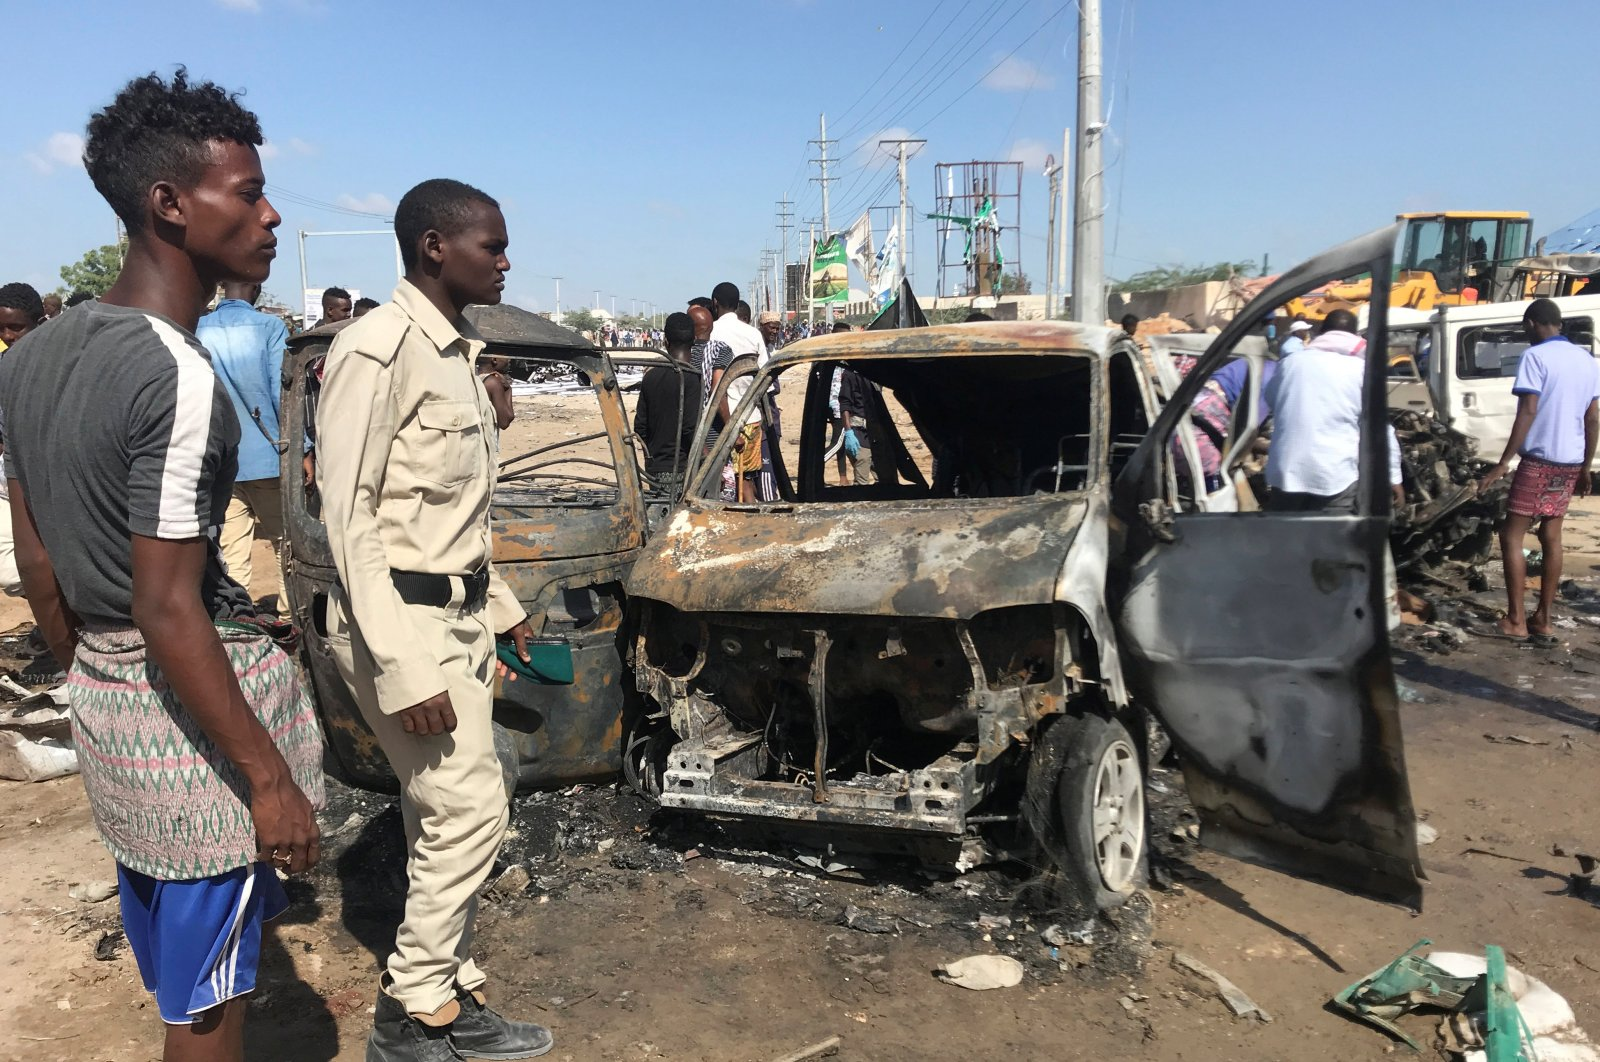 Somali security assess the scene of a car bomb explosion at a checkpoint in Mogadishu, Somalia  Dec. 28, 2019. (Reuters Photo)